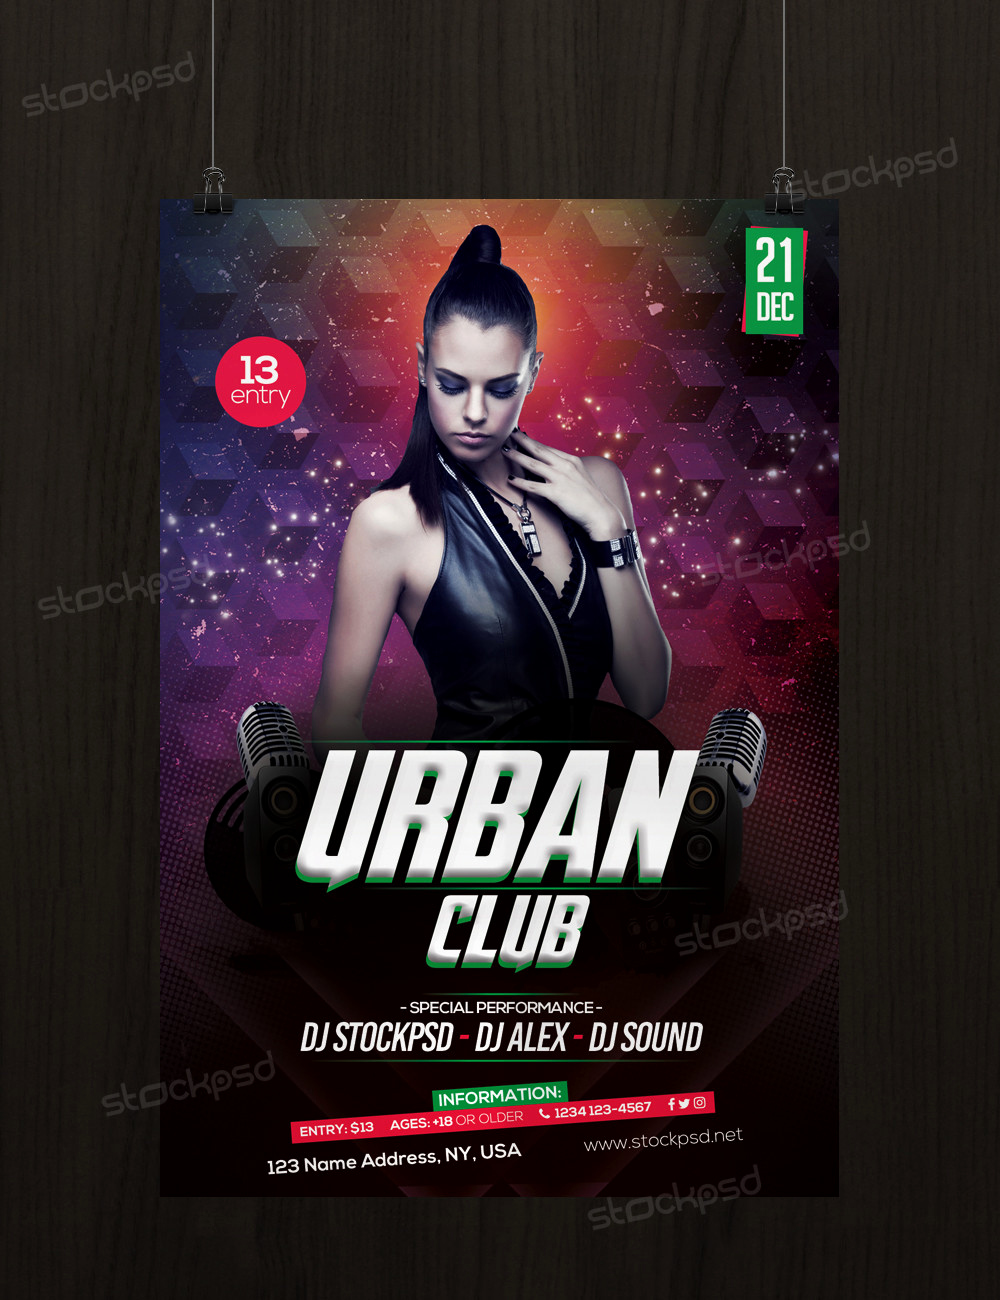 Free Club Flyer Templates Beautiful Urban Club Download Free Psd Flyer Template Stockpsd